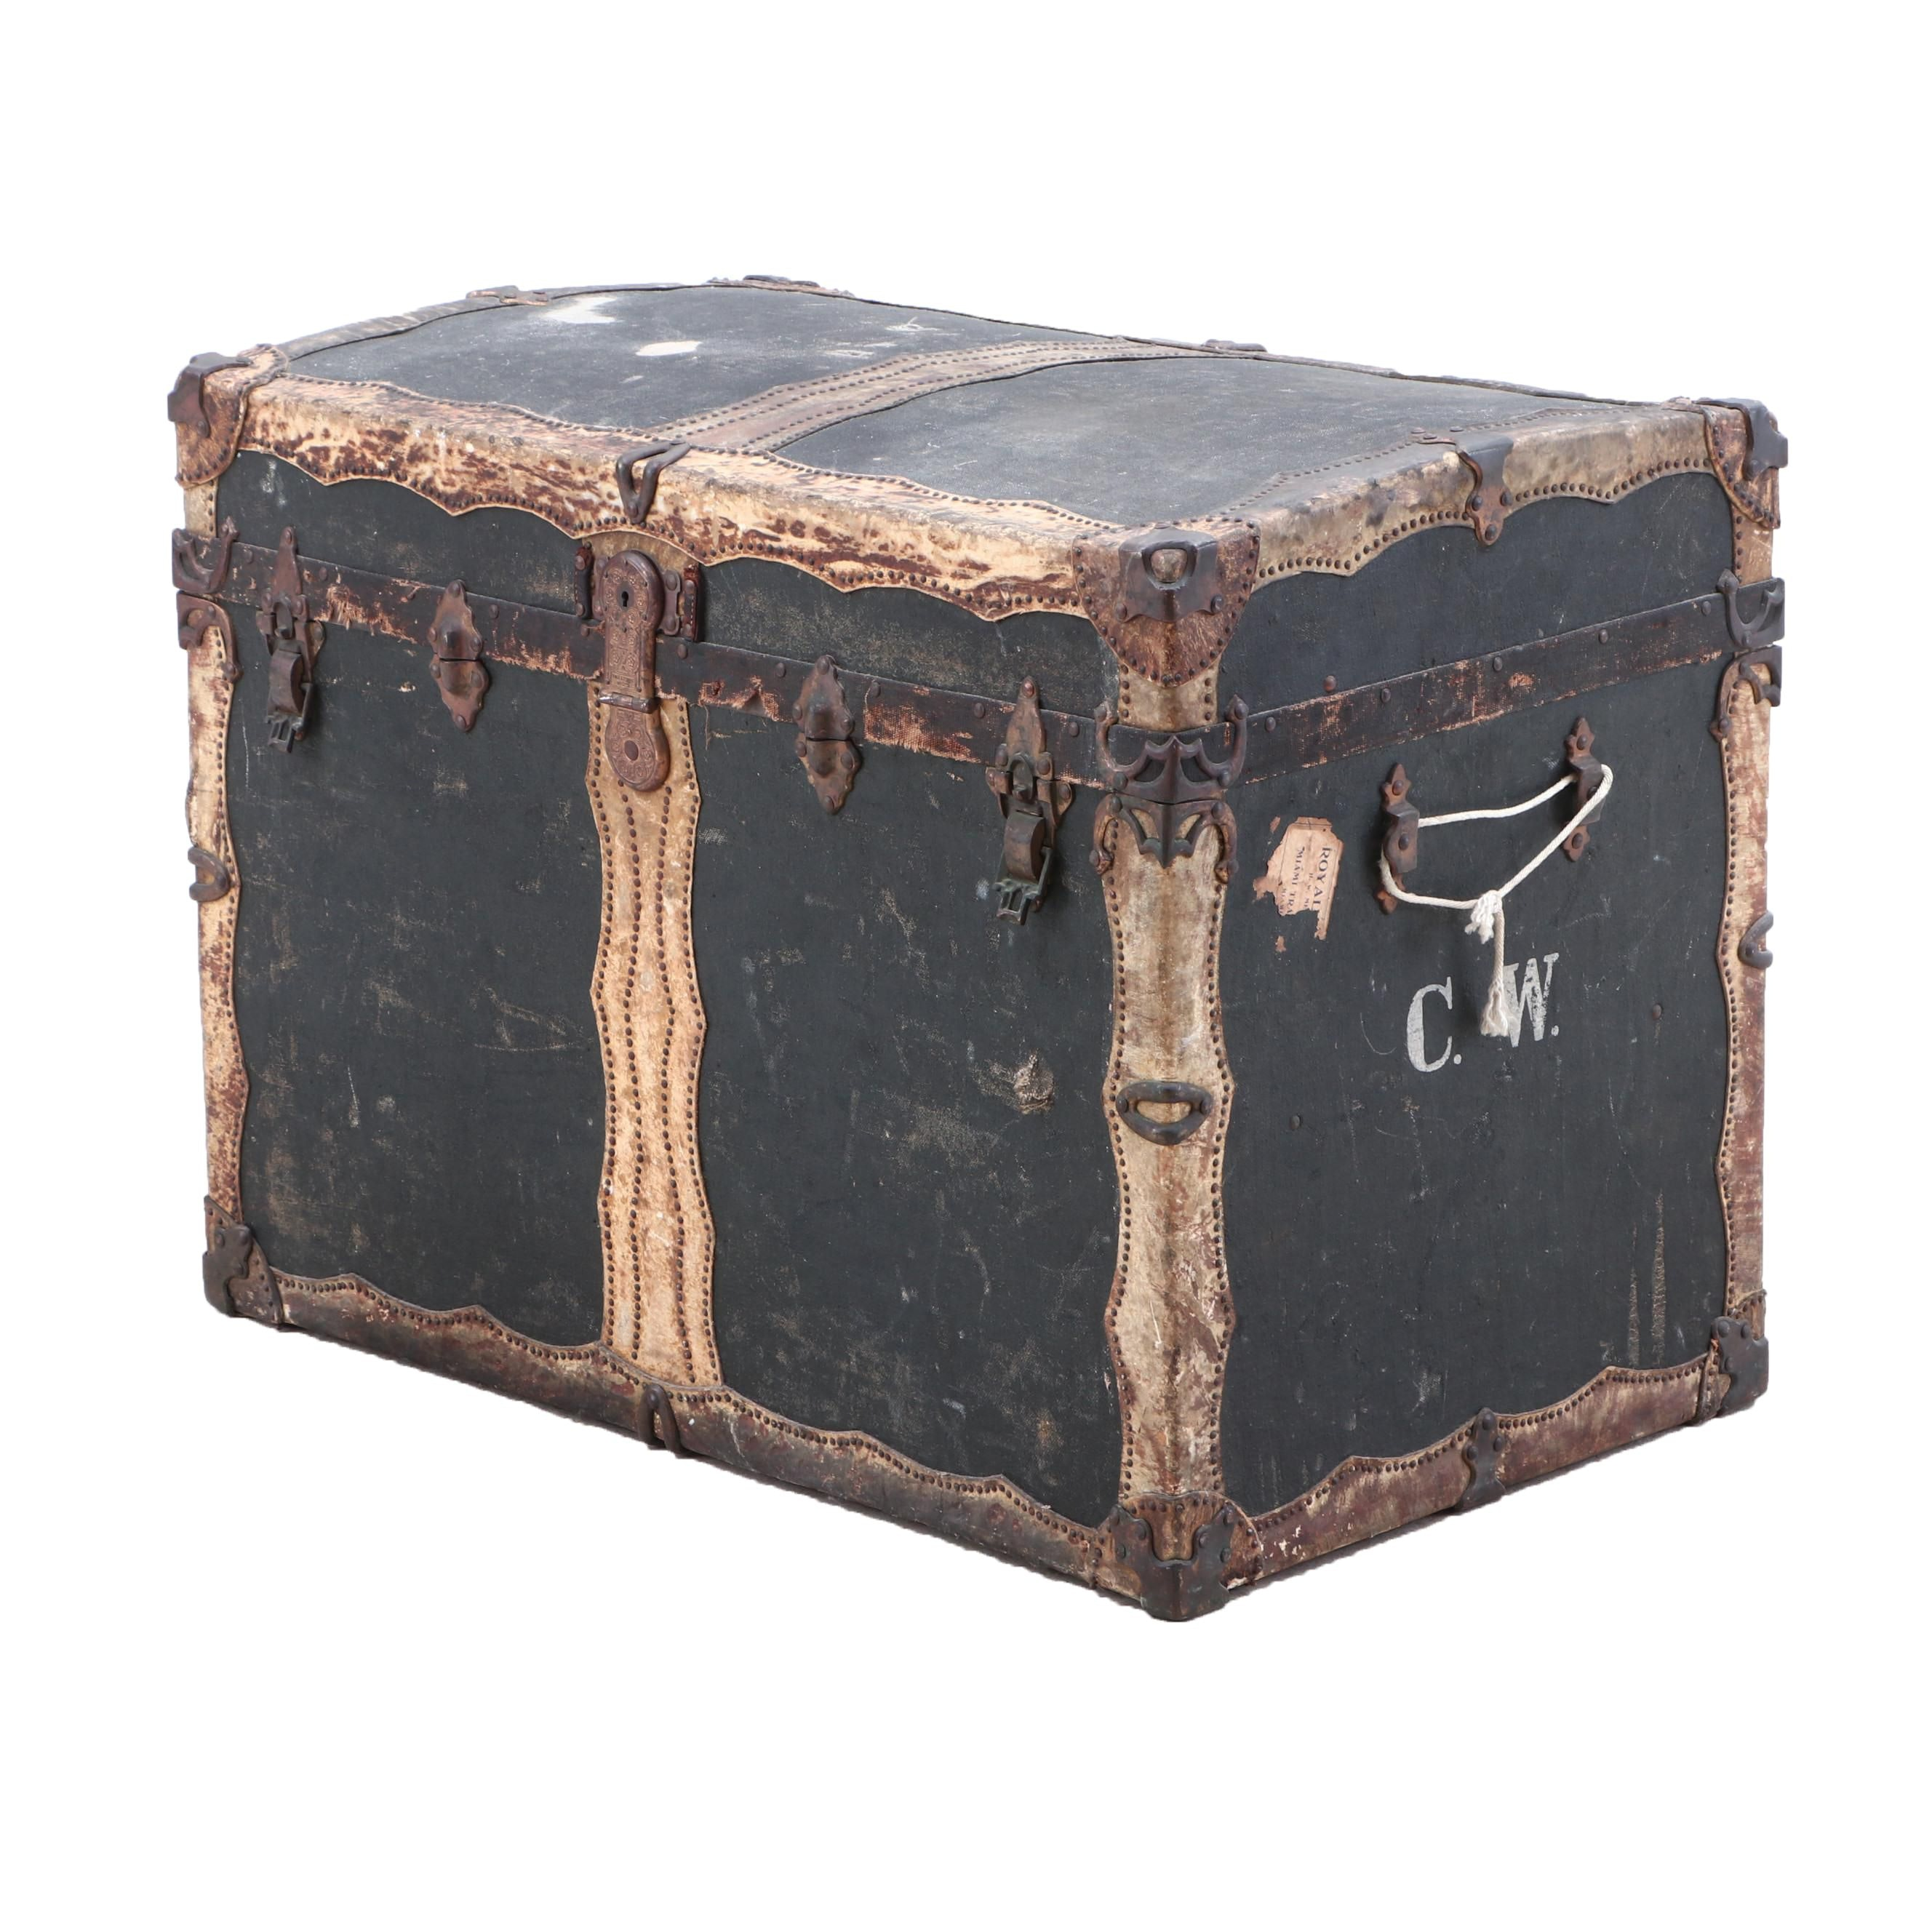 Drucker and Company Ebonized Wood and Buffalo Rawhide Trunk, Late 19th Century